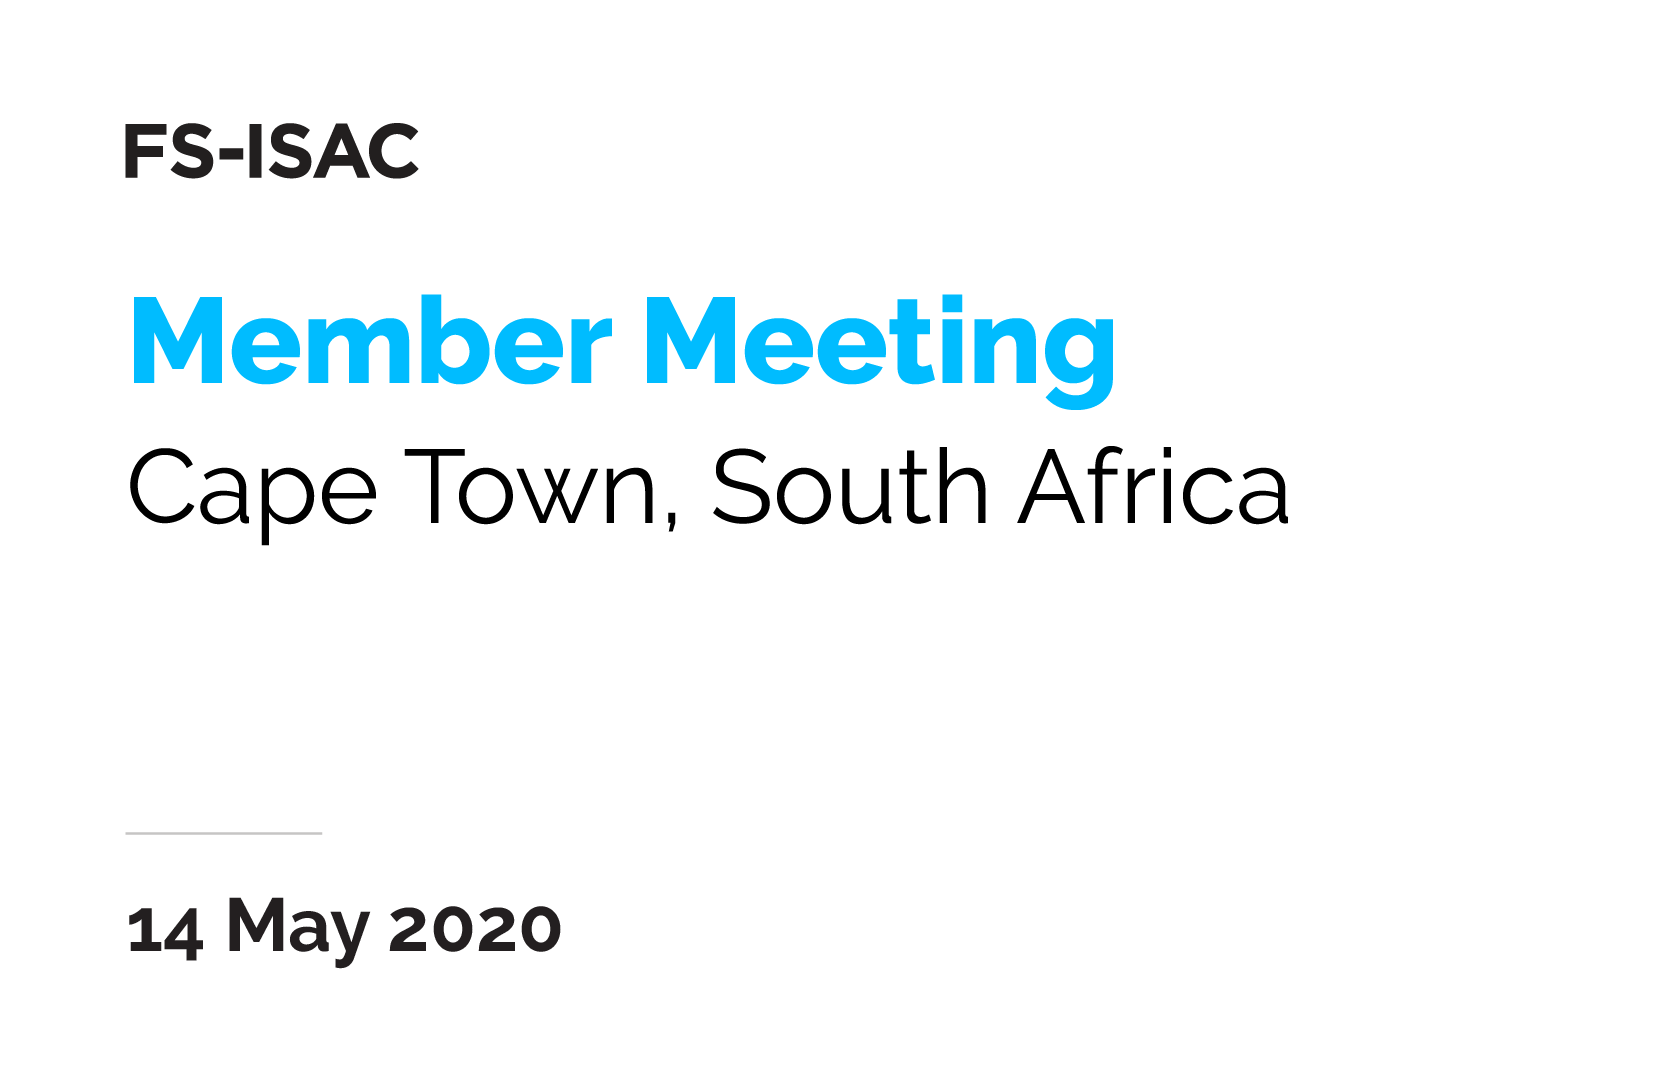 Cape Town Member Meeting